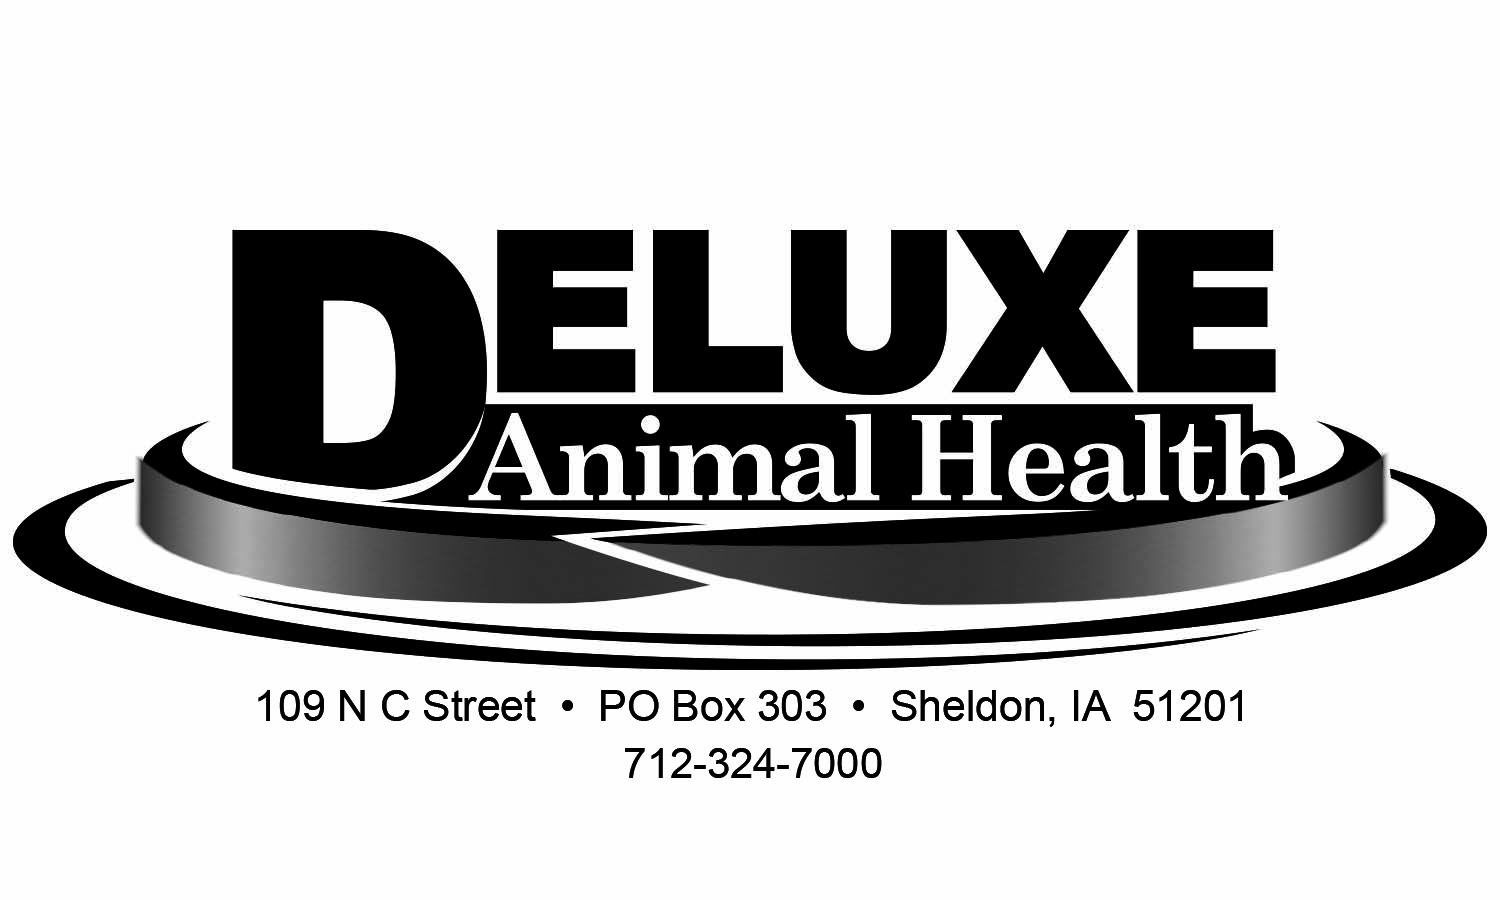 Deluxe Animal Health logo copy